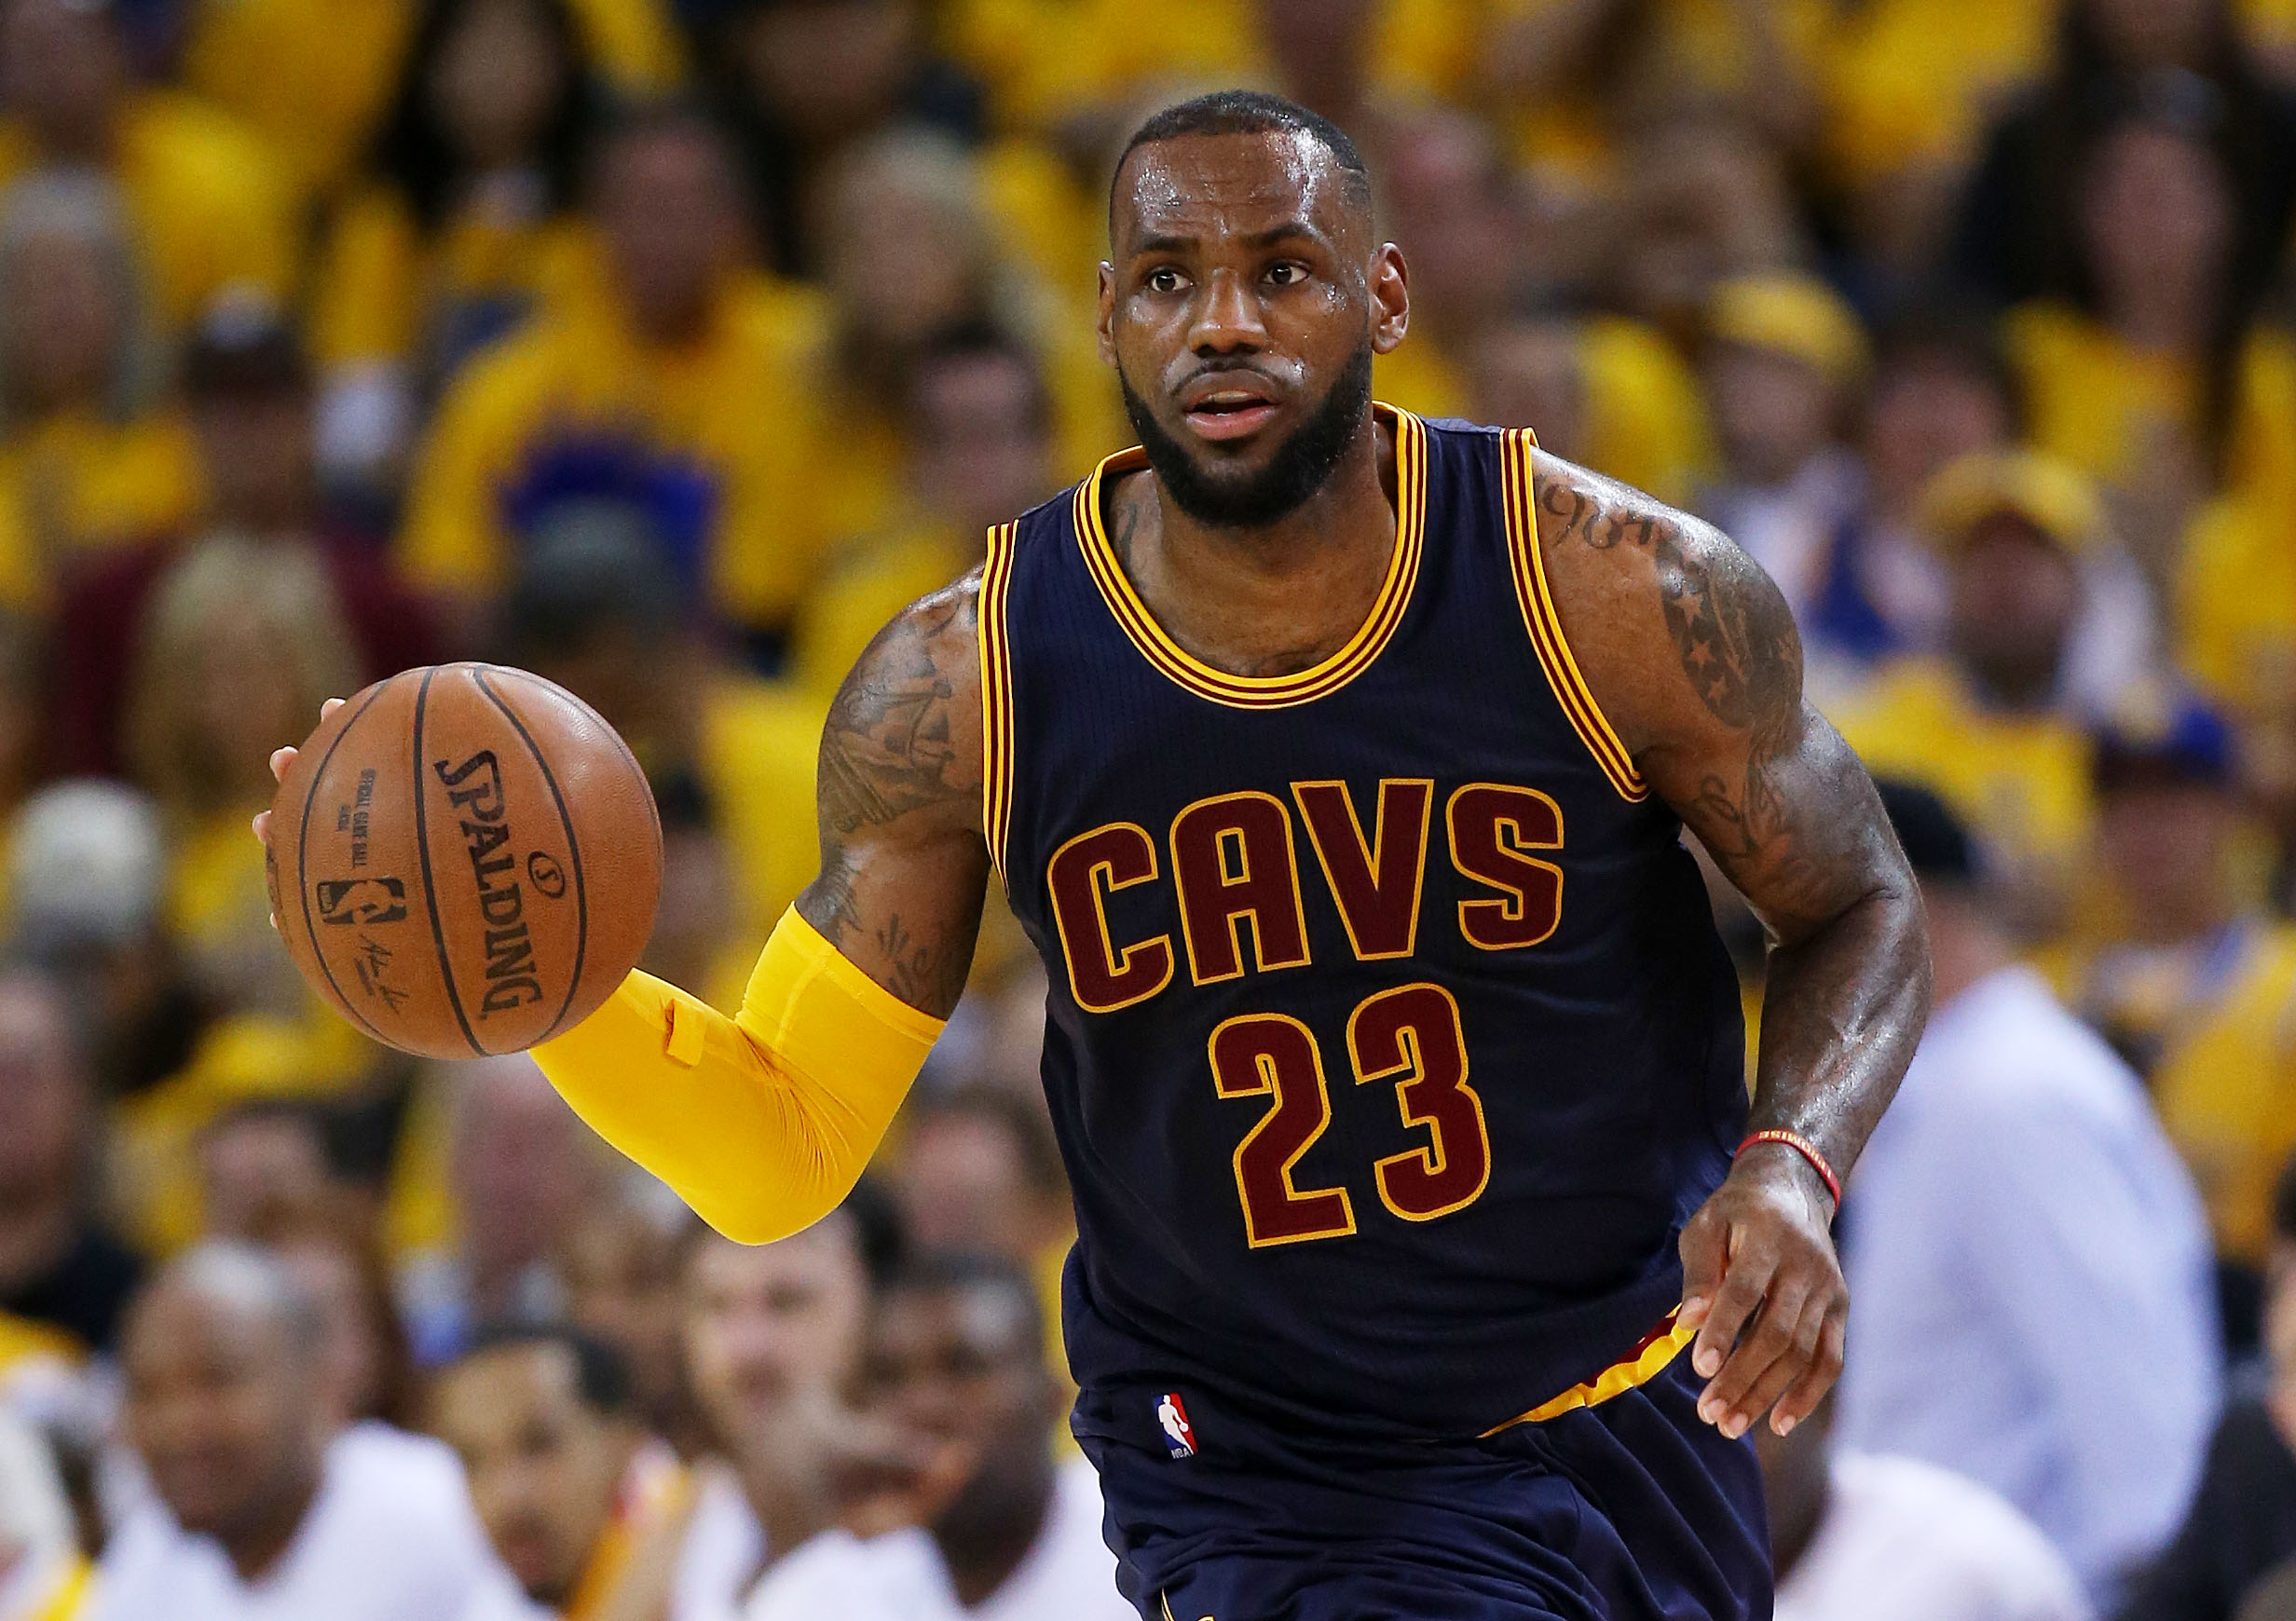 OAKLAND, CA - JUNE 07:  LeBron James #23 of the Cleveland Cavaliers drives against the Golden State Warriors in the second quarter during Game Two of the 2015 NBA Finals at ORACLE Arena on June 7, 2015 in Oakland, California. (Photo by Ezra Shaw/Getty Ima